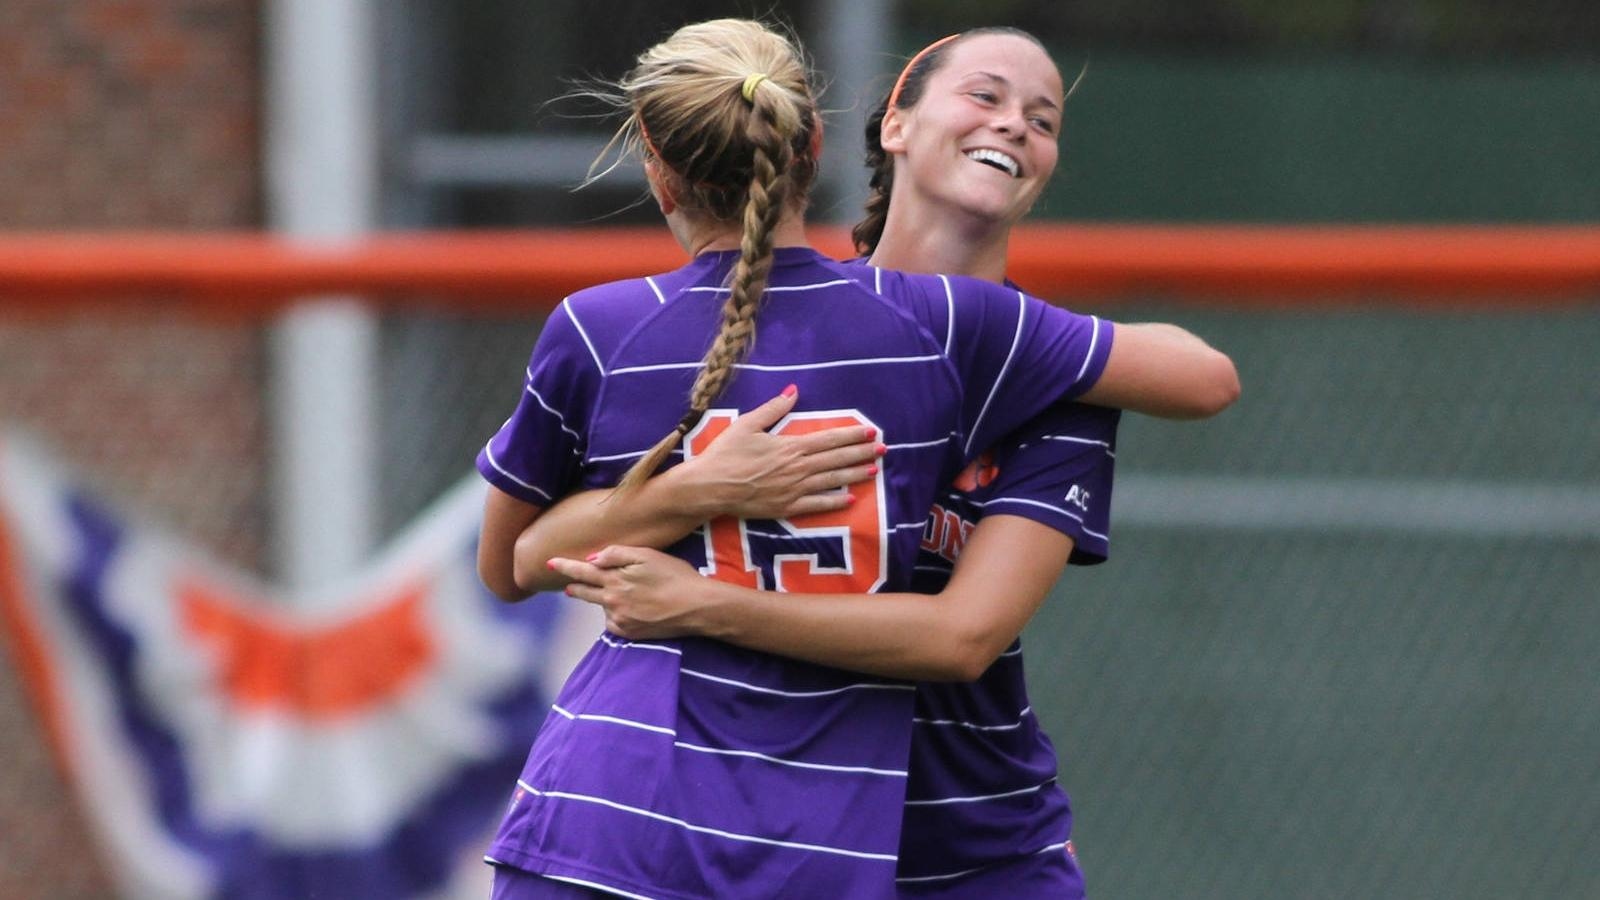 ClemsonTigers.com Exclusive: Dobberstein Embraces Role of Tone-Setter